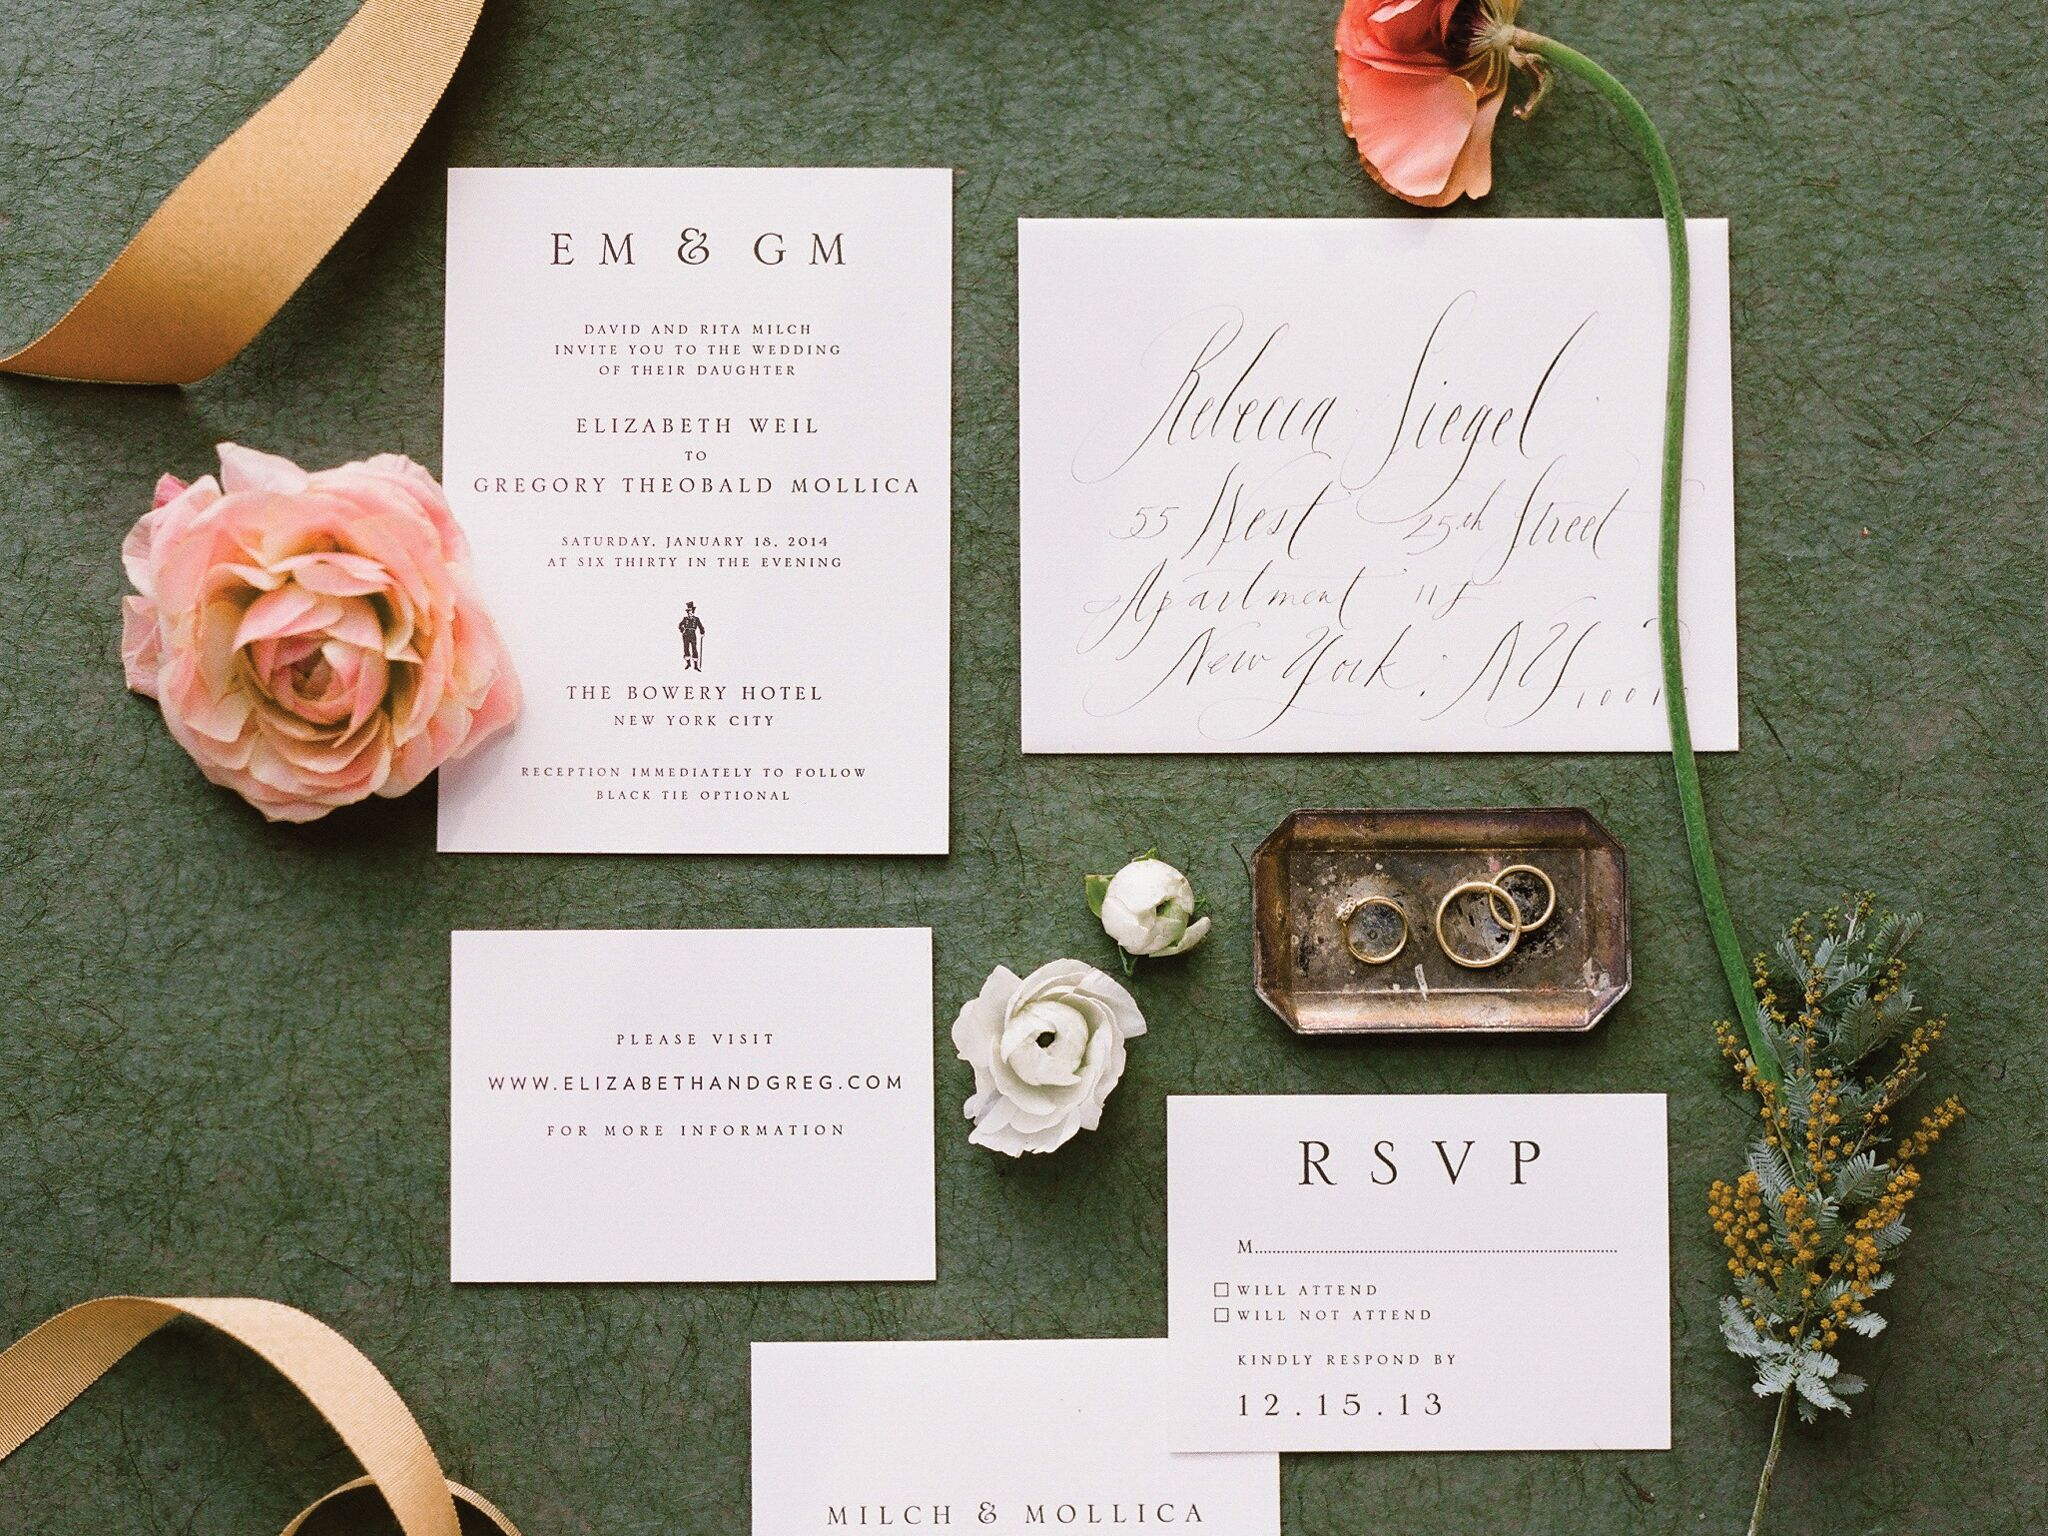 top 10 wedding invitation etiquette qas - When To Mail Wedding Invitations